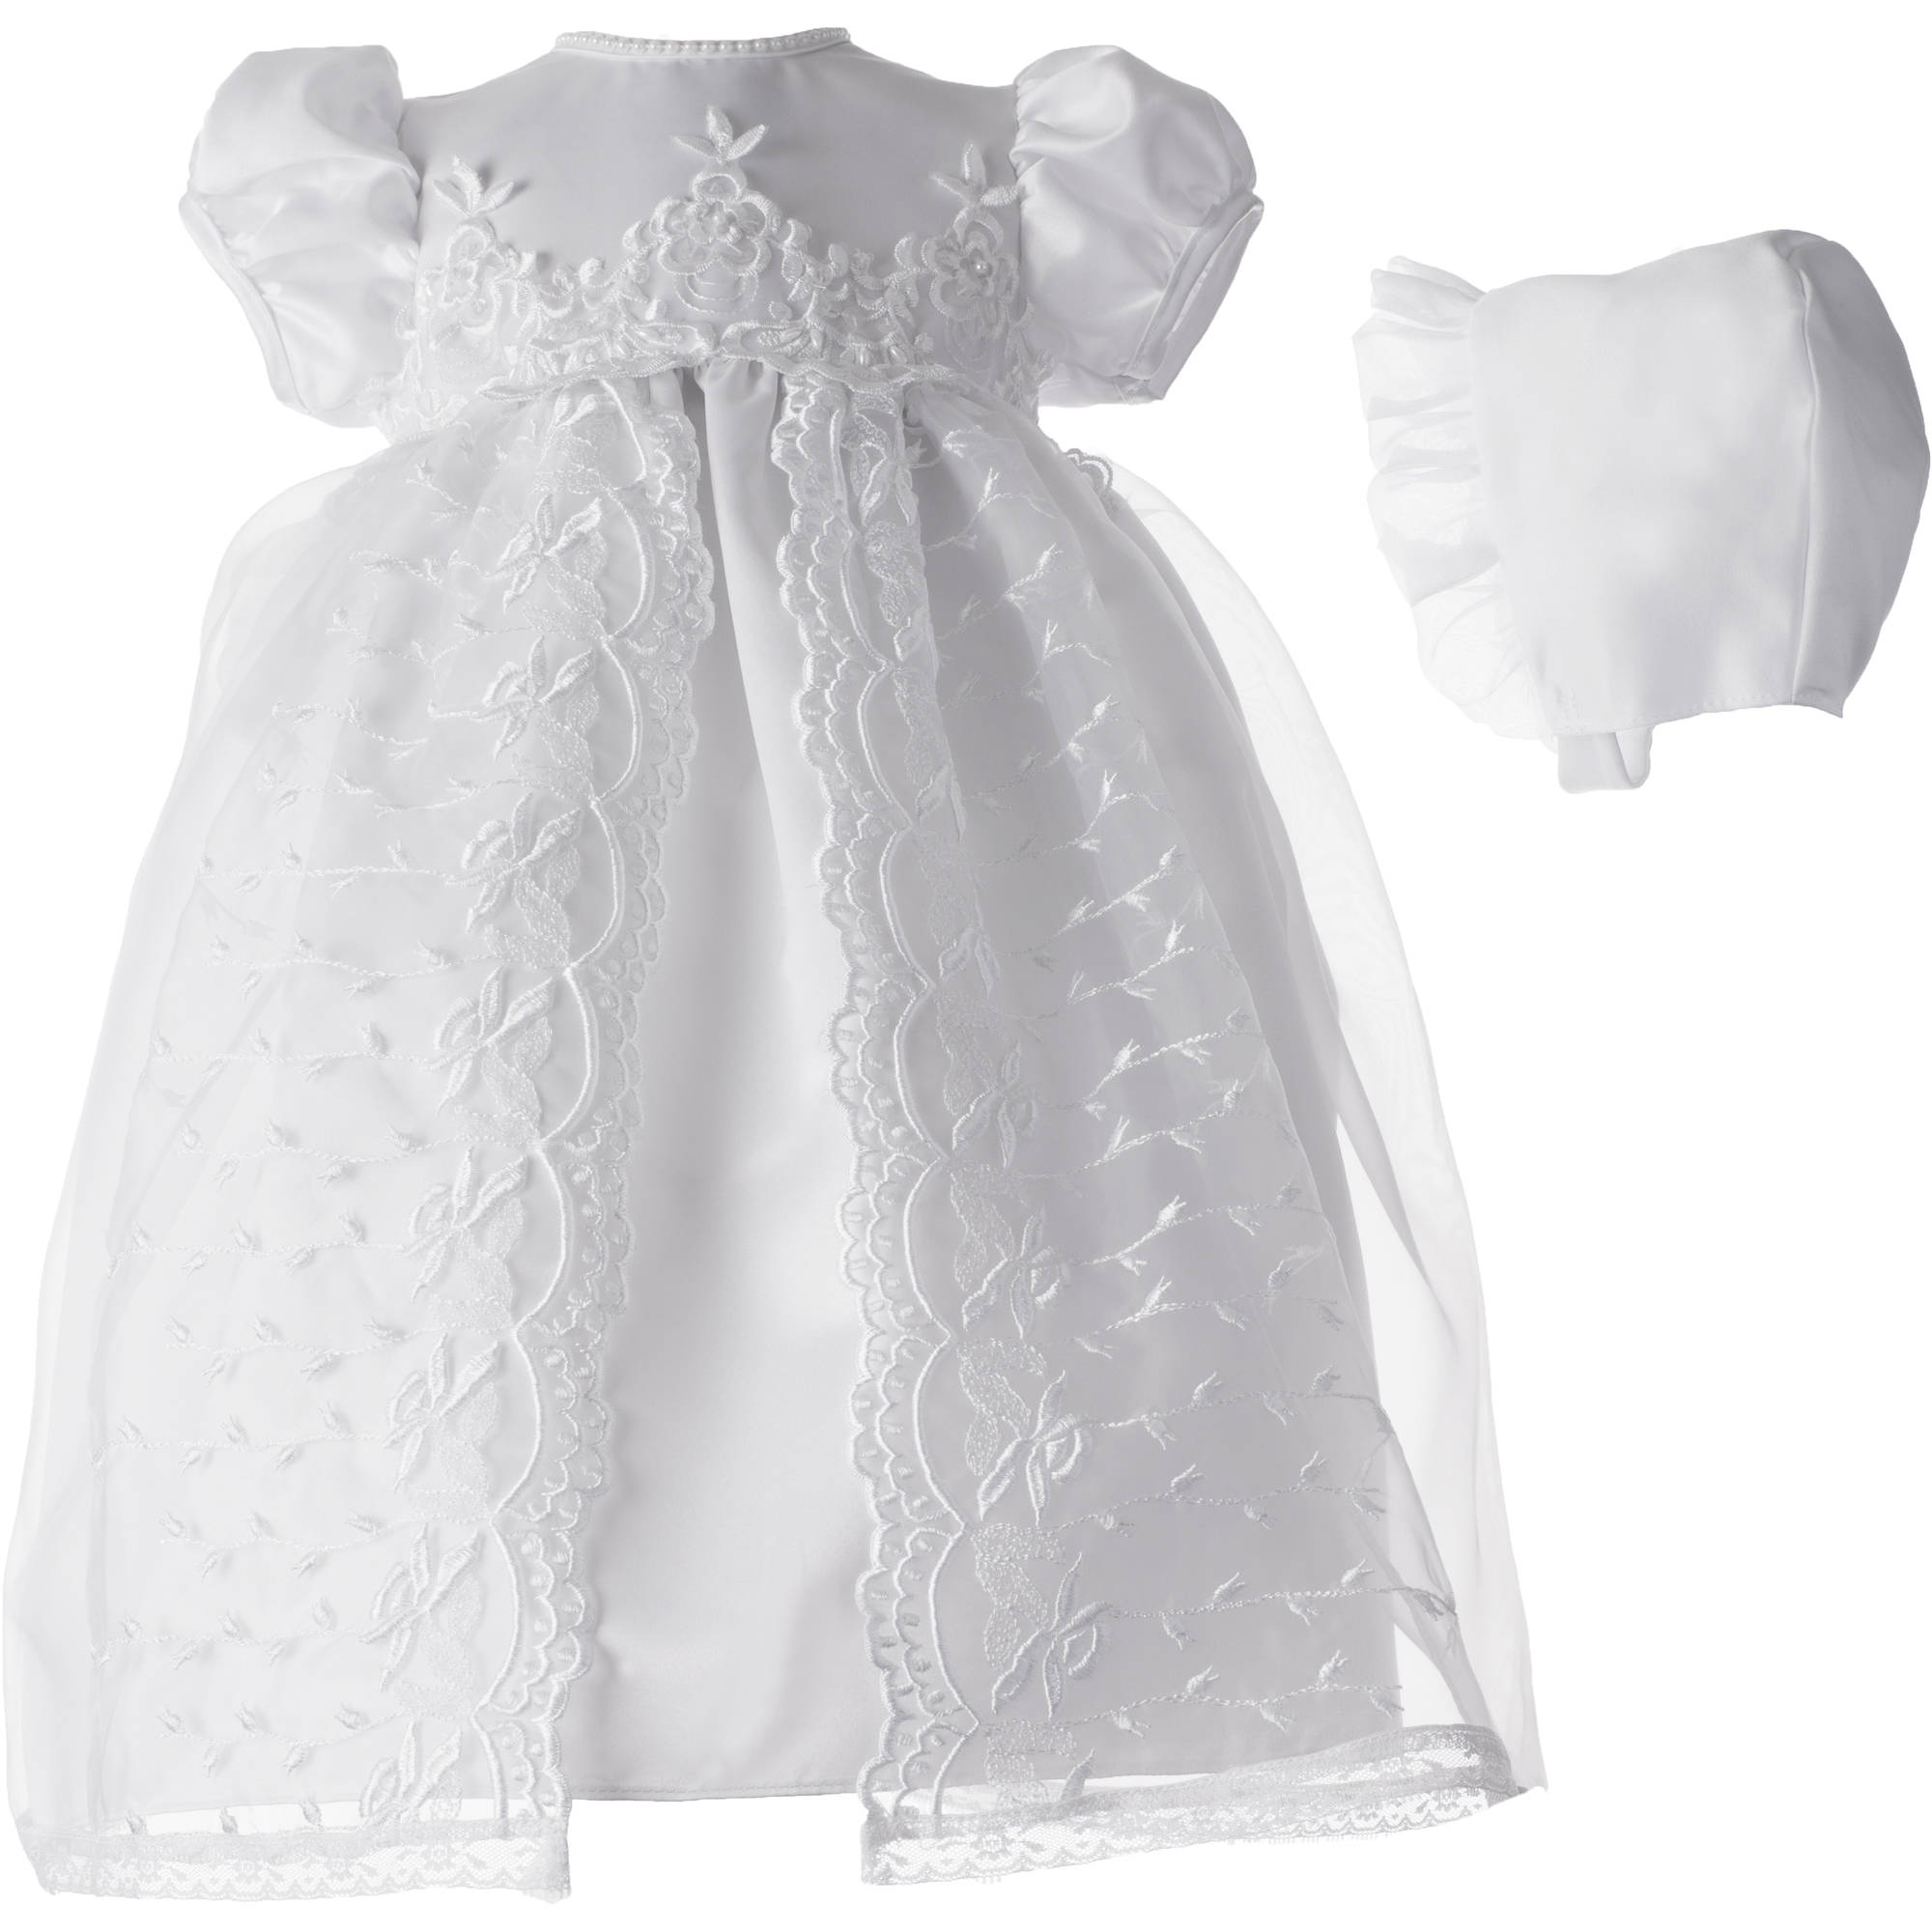 Christening Baptism Newborn Baby Girl Special Occasion Girls Long Embroidered Organza Over Satin Dress